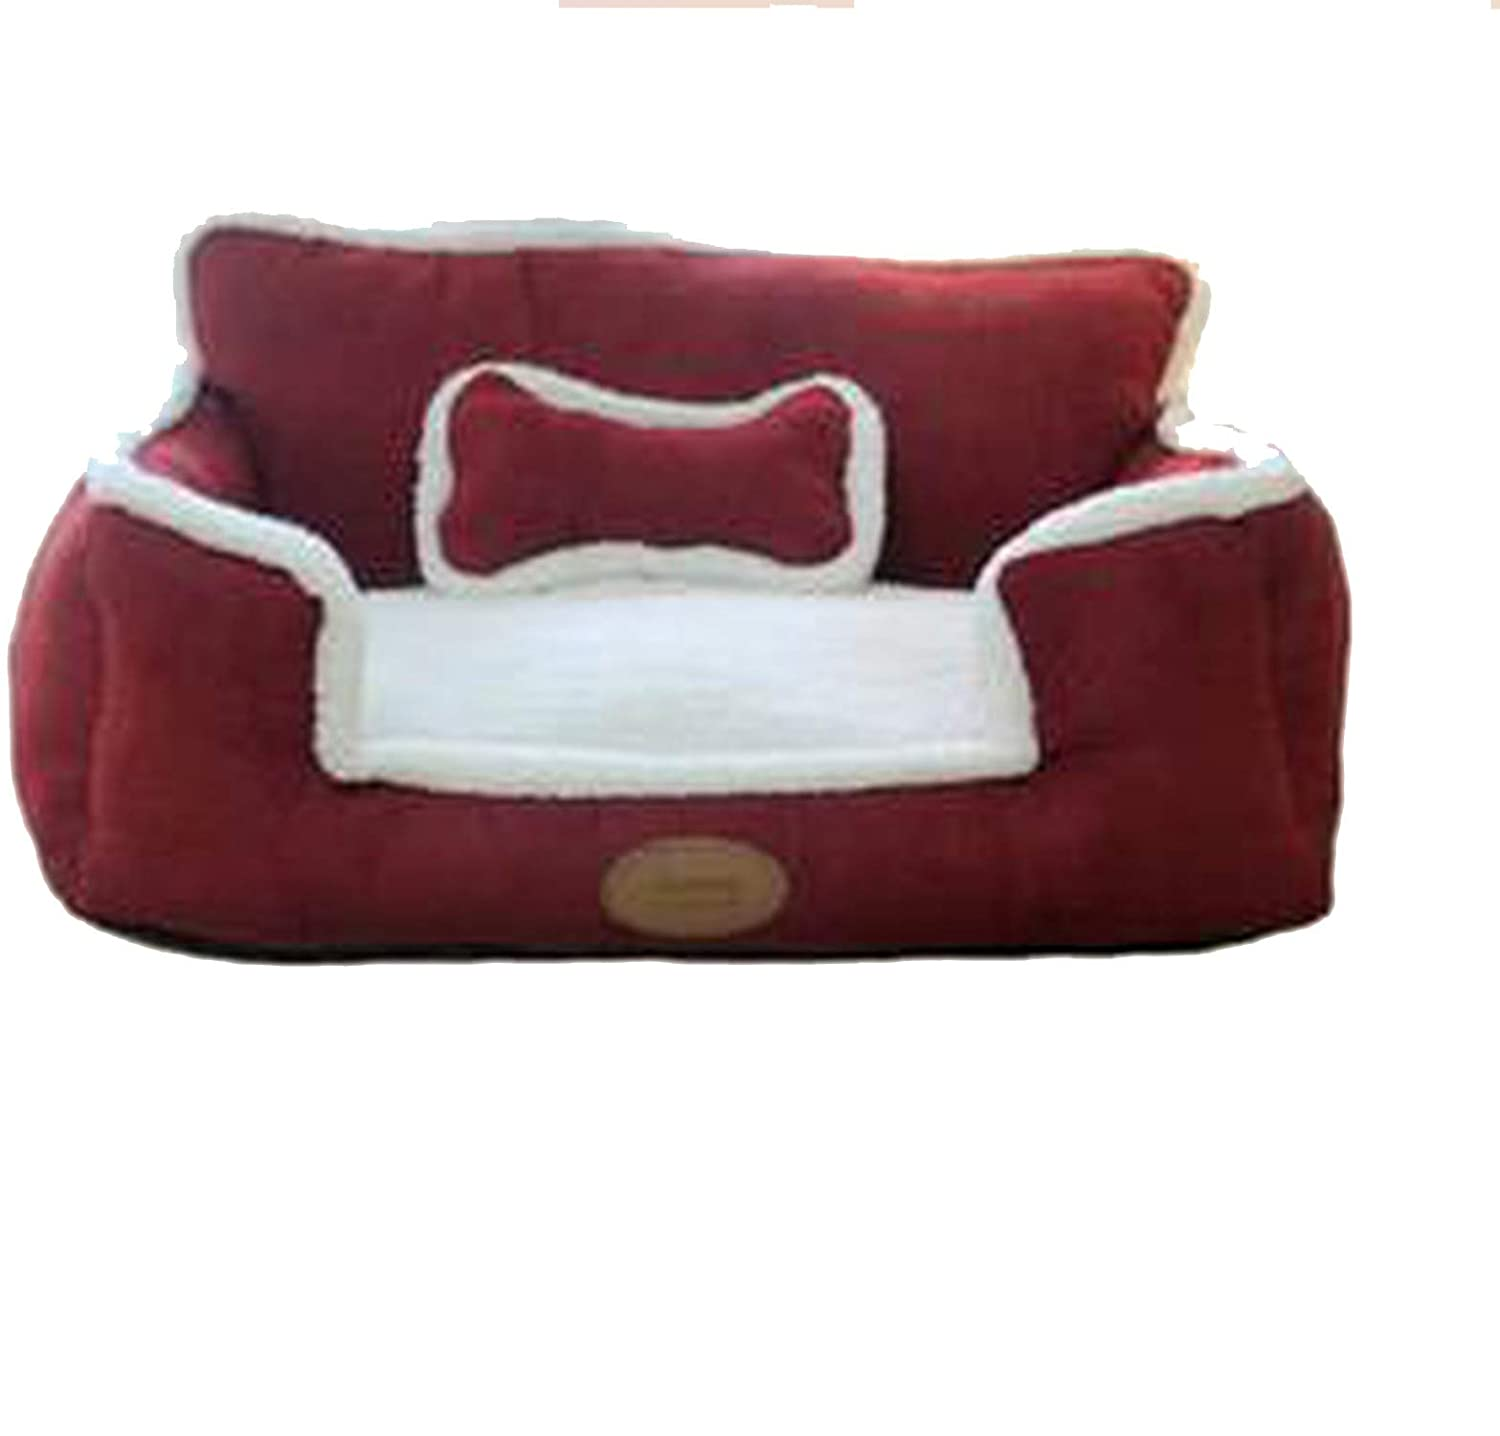 Red 75x60cm red 75x60cm sevenTimes Luxury Pew Nest Detachable Washable Dog Kennel House Soft Warm Cat Litter Puppy Bed Comfortable Large Pet Sofa Mat Cushion,Red,75X60Cm